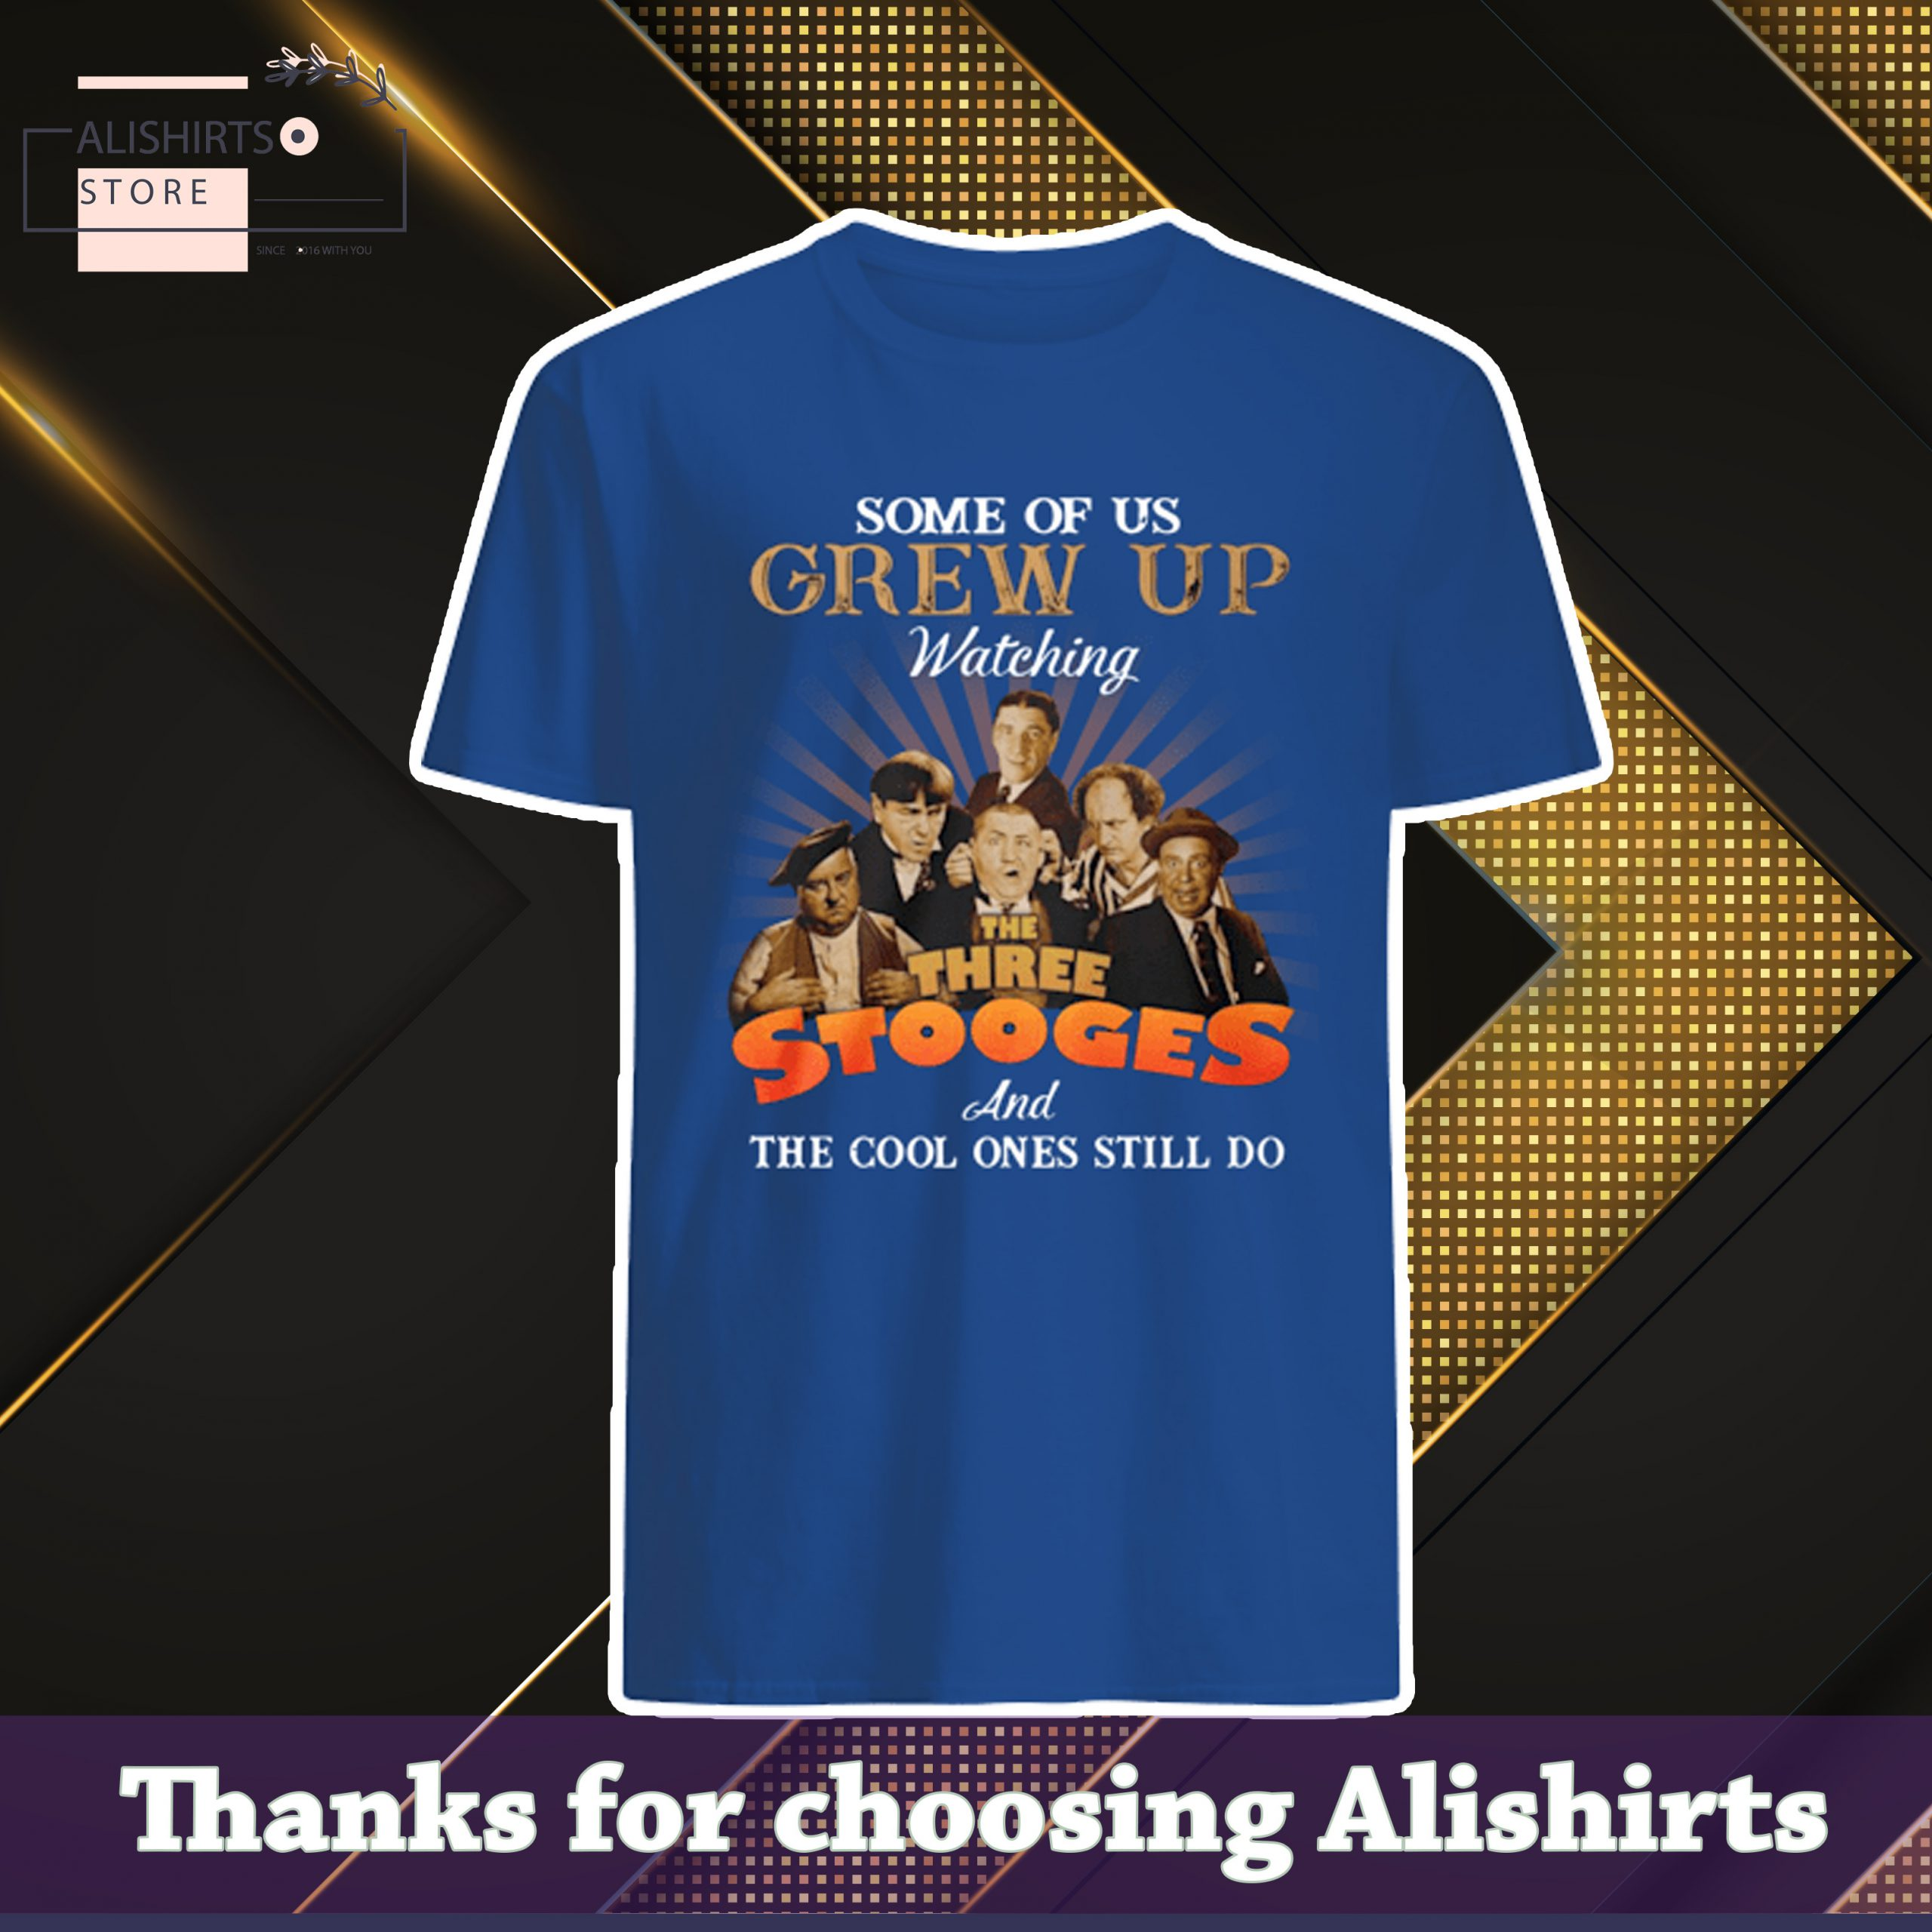 Some of us grew up watching the three stooges and the cool ones still do shirt